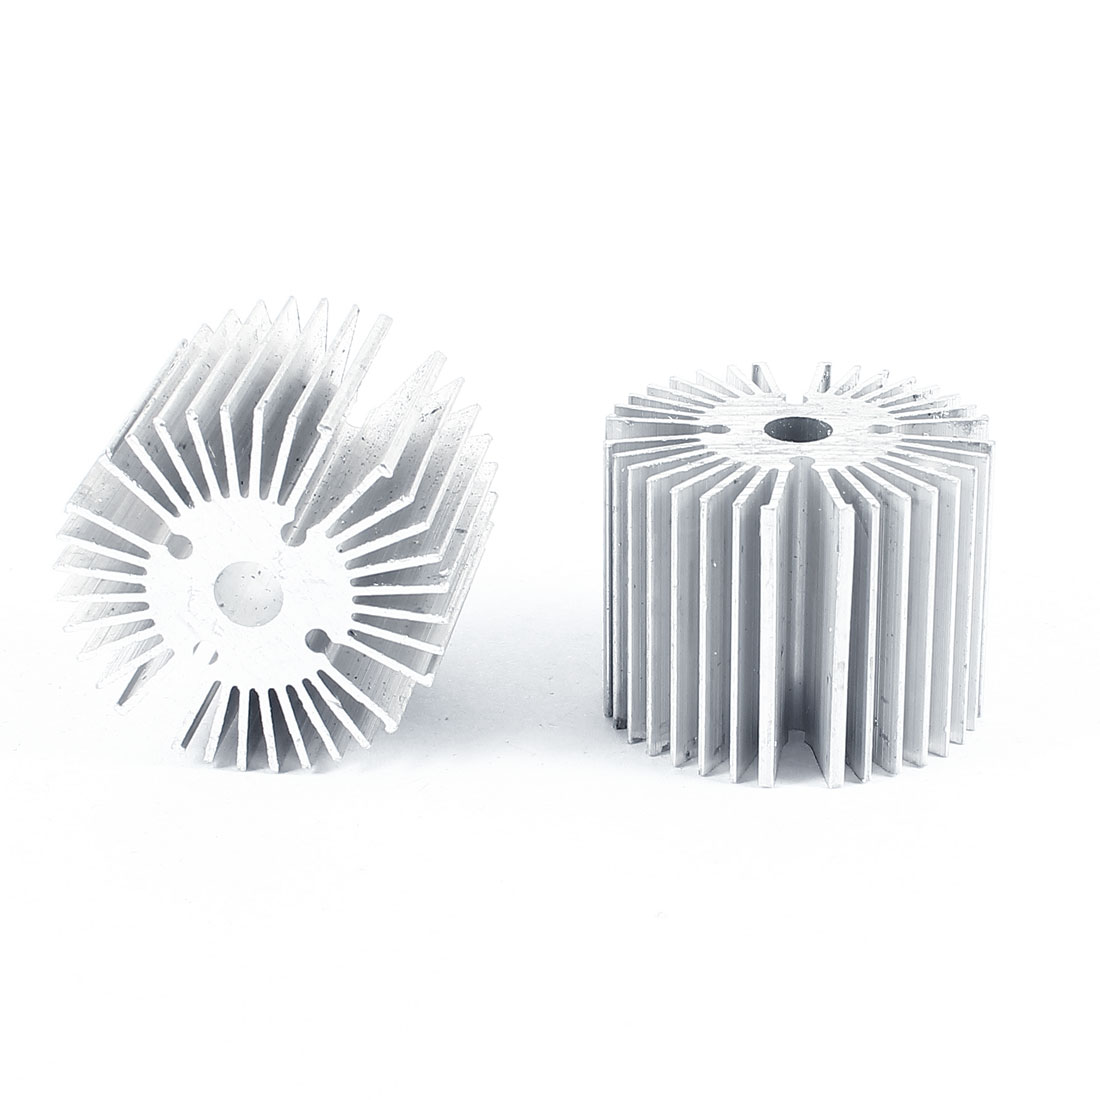 2 Pcs Round Shaped 39mm OD 6.5mm ID 30mm Height LED Light Heat Sinks Cooling Fin